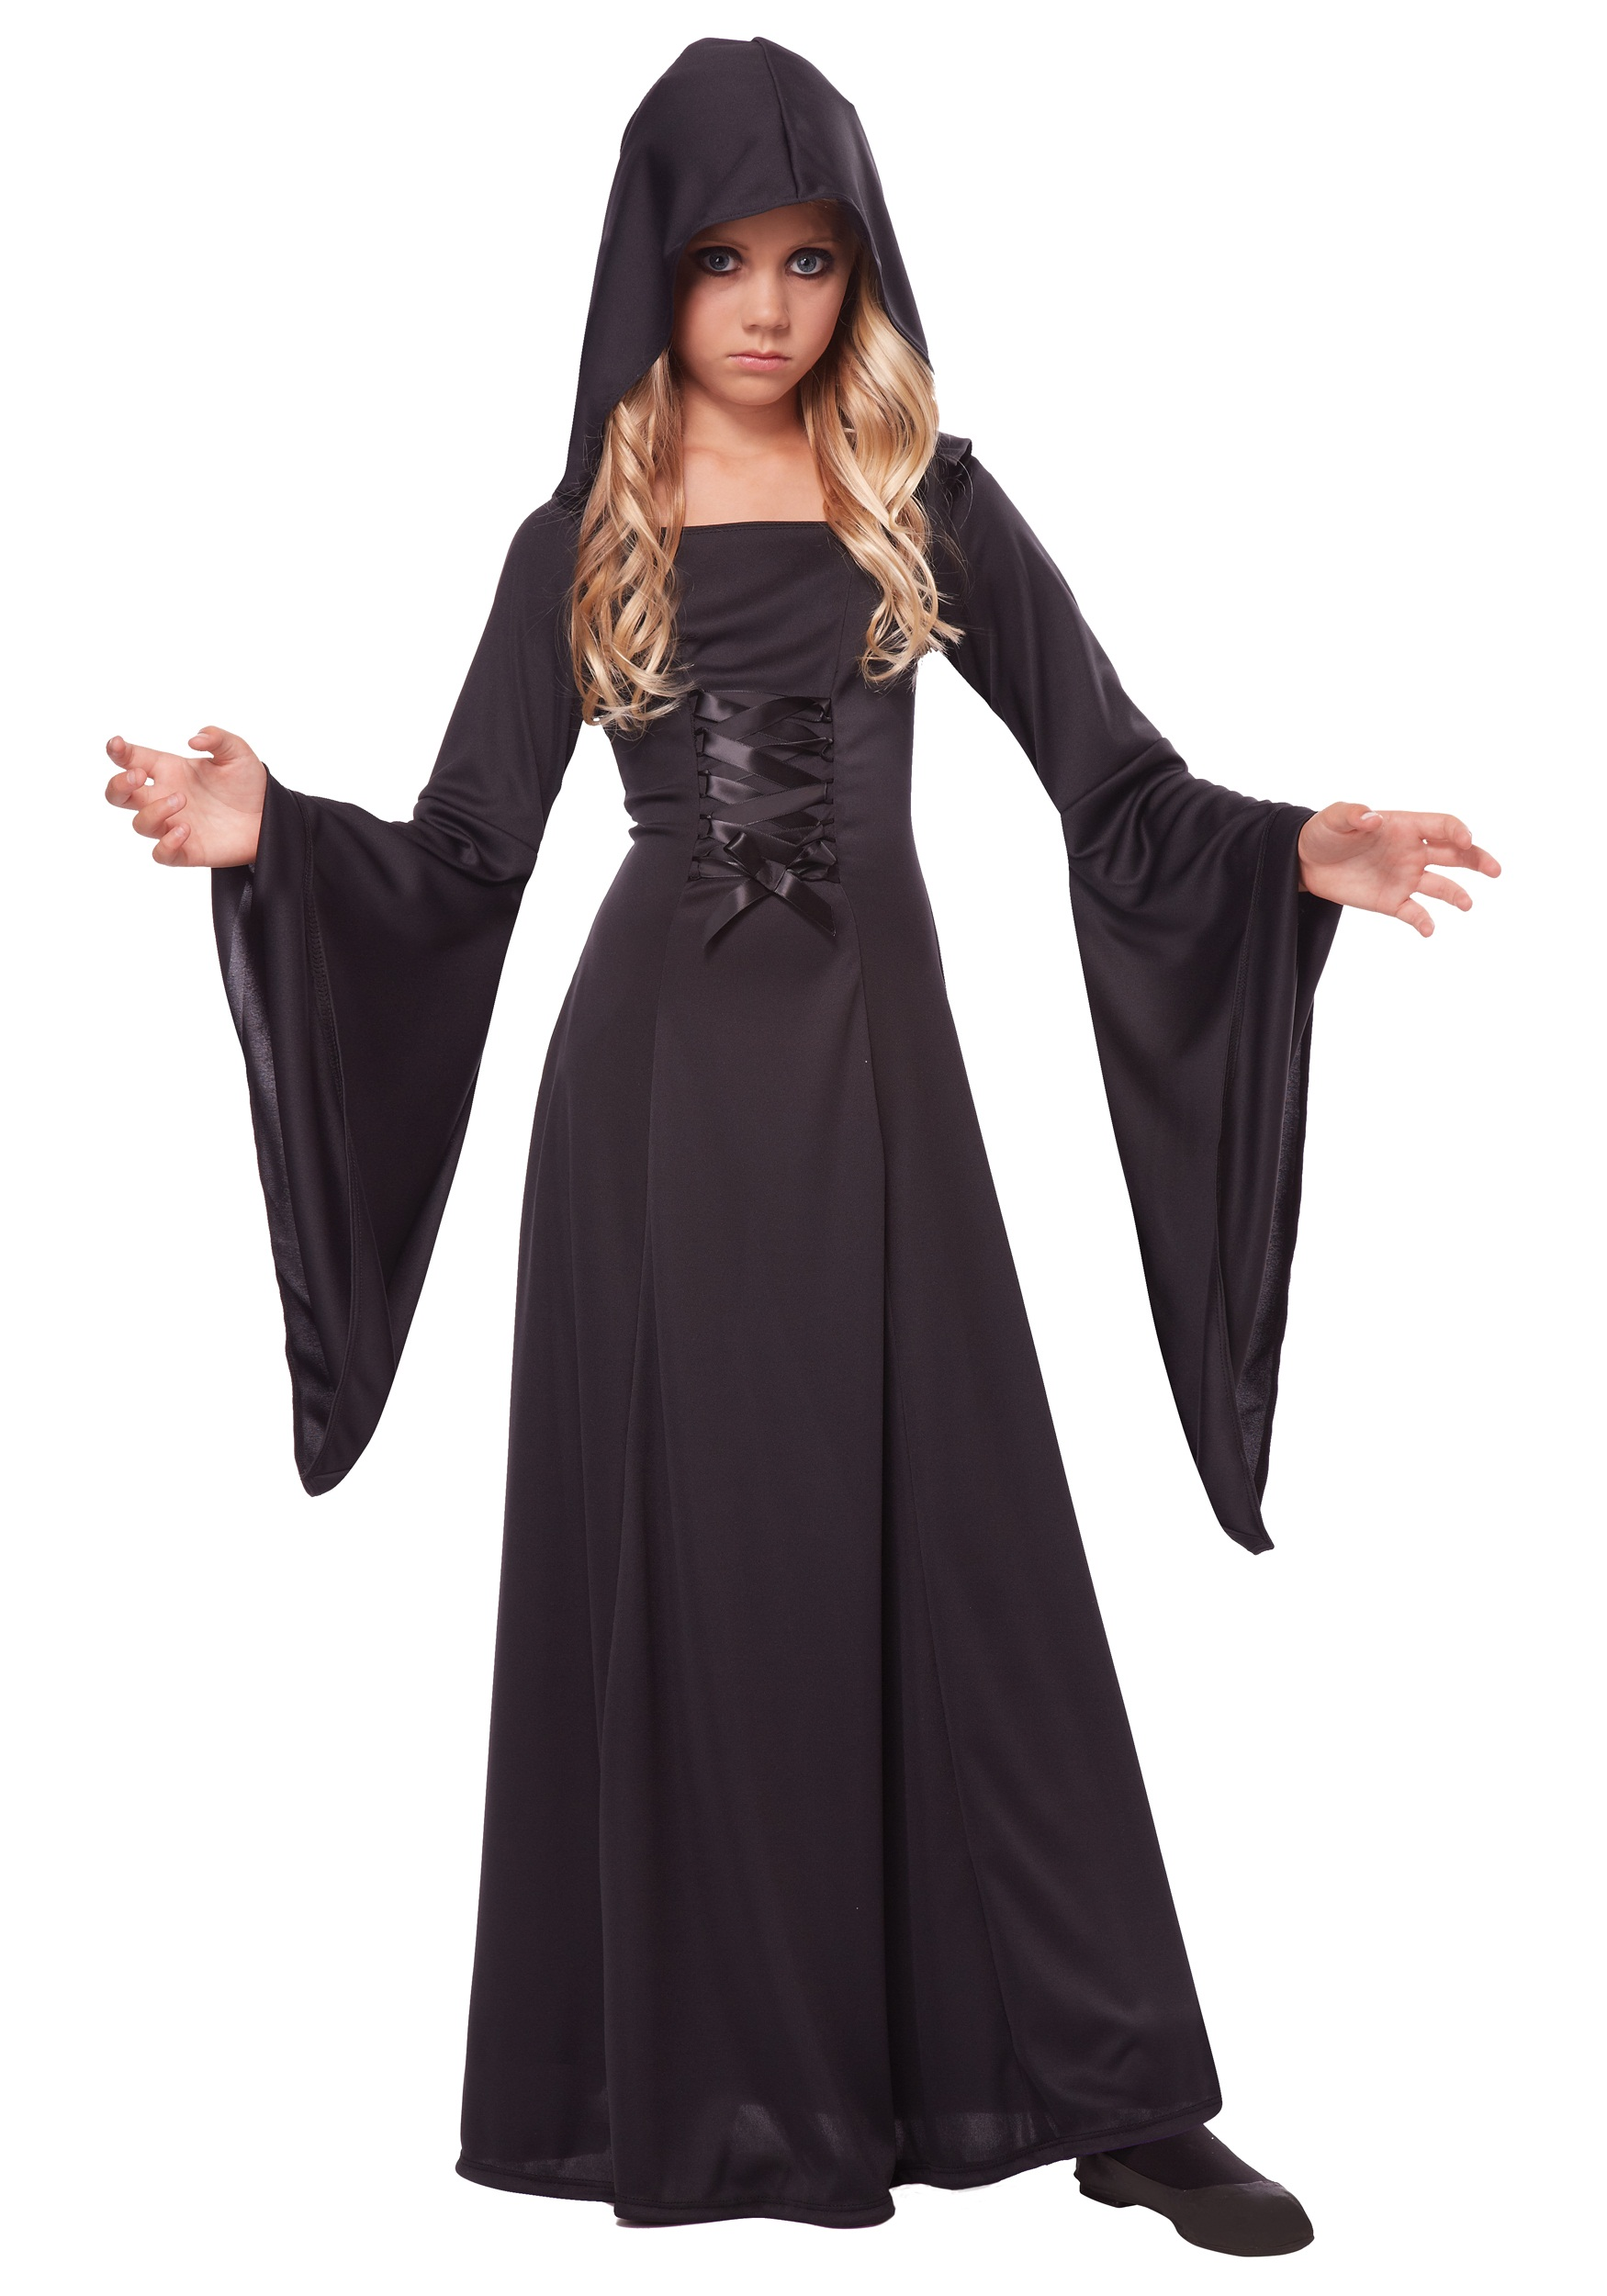 Deluxe Black Hooded Girls Robe  sc 1 st  Fun.com & Deluxe Black Hooded Robe for Girls